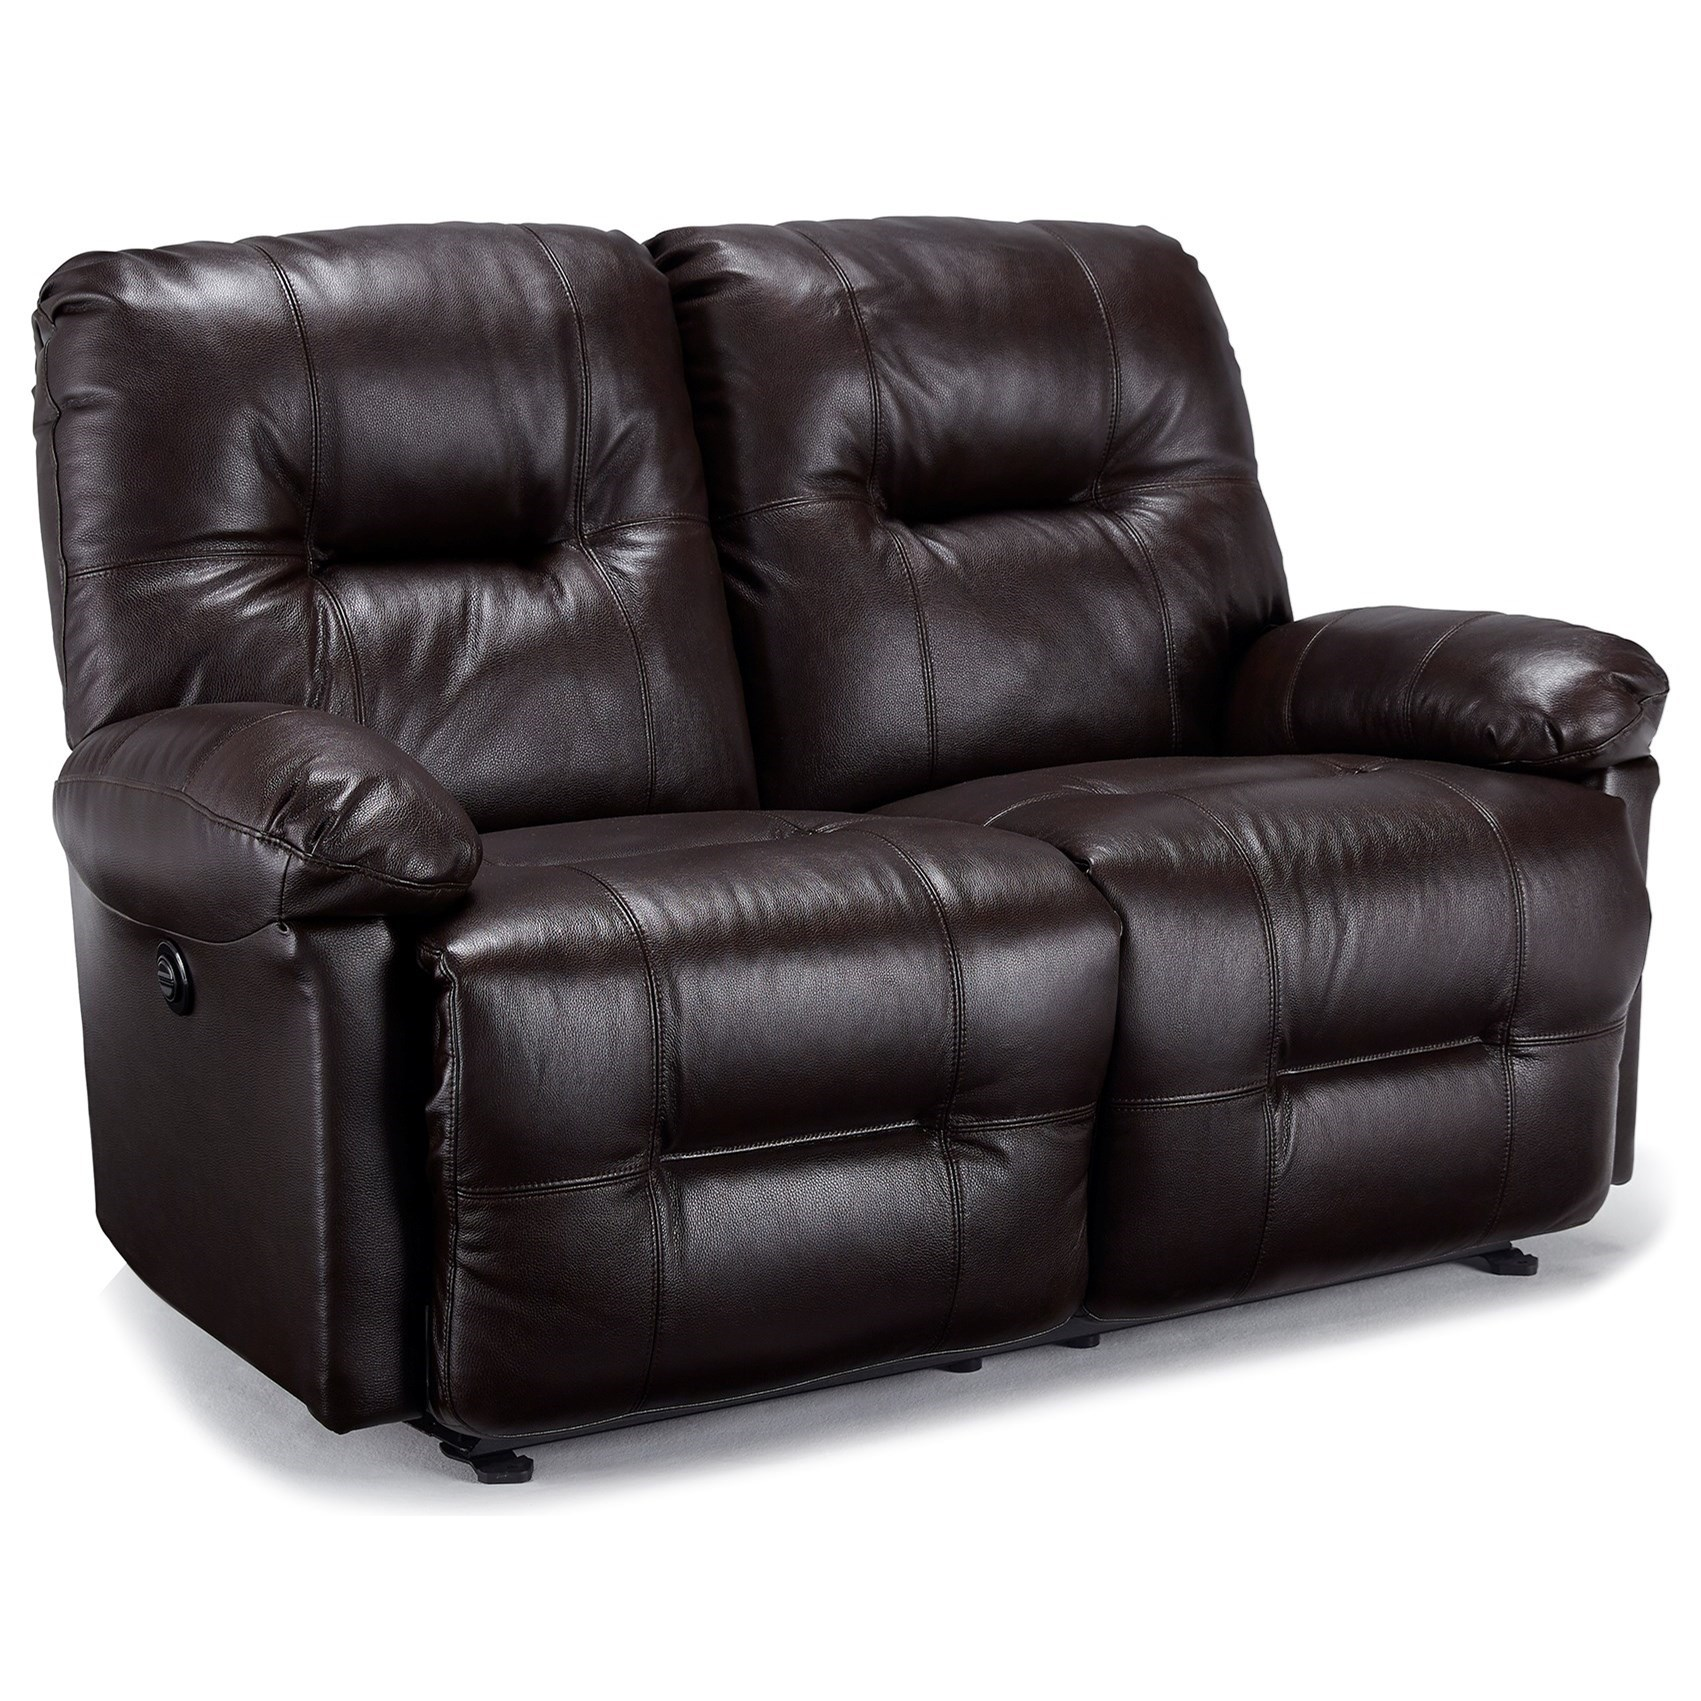 S501 Zaynah Reclining Loveseat by Best Home Furnishings at Baer's Furniture